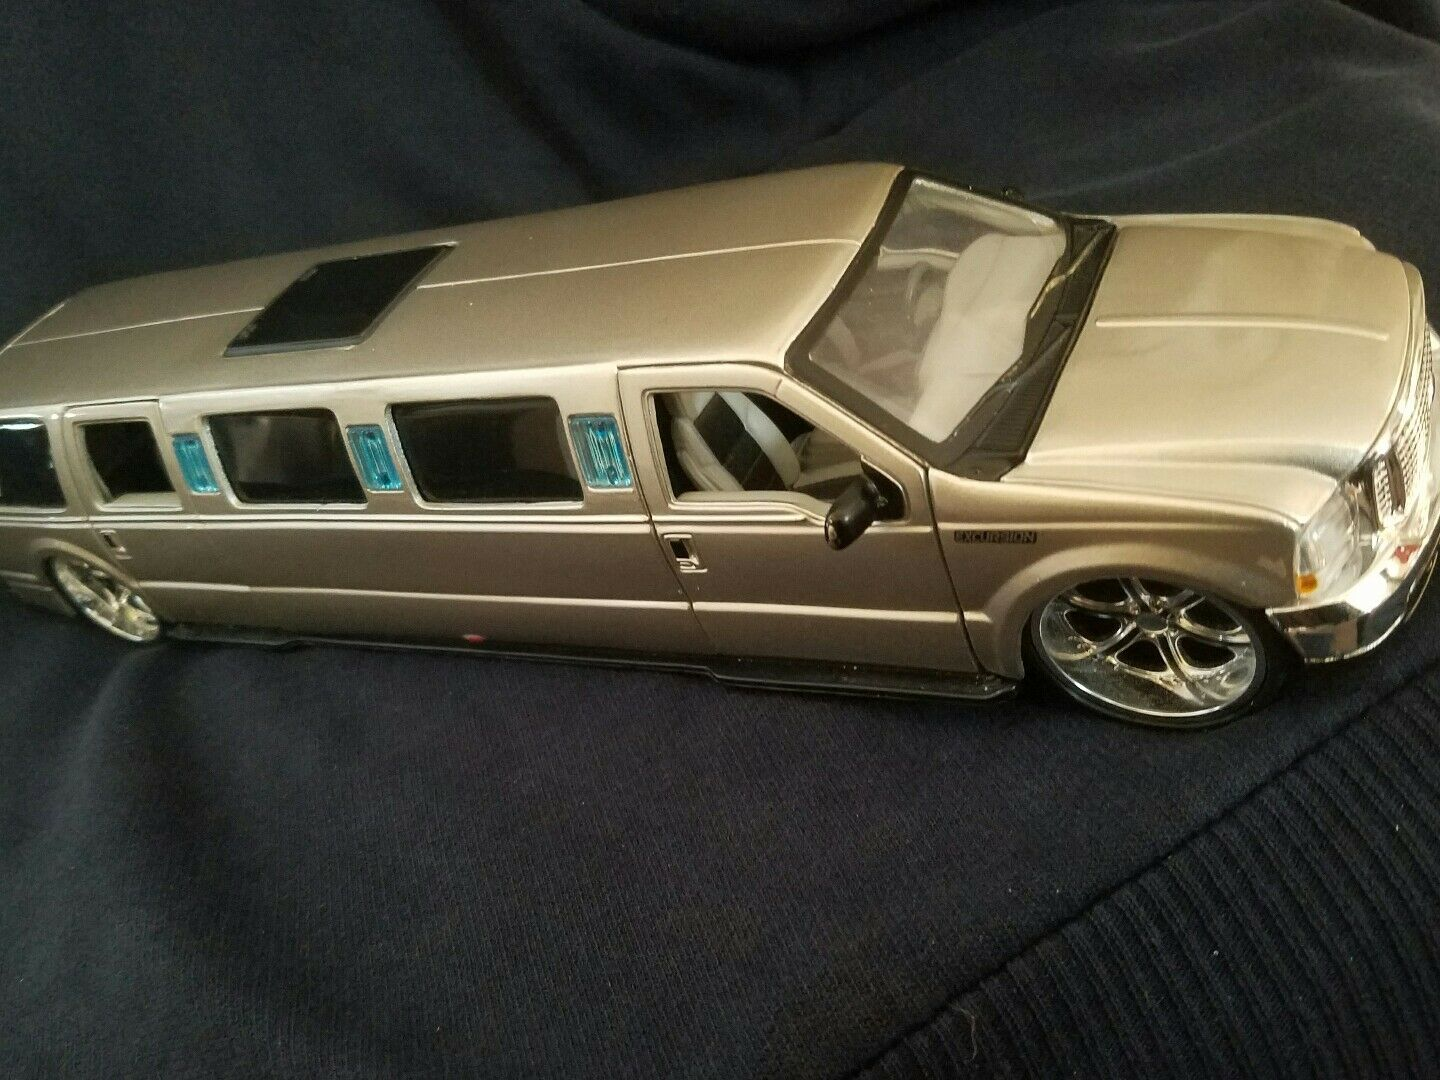 Maisto 1 24th scale Tan Tan Tan Ford Excursion Limosine - MIP 039a57